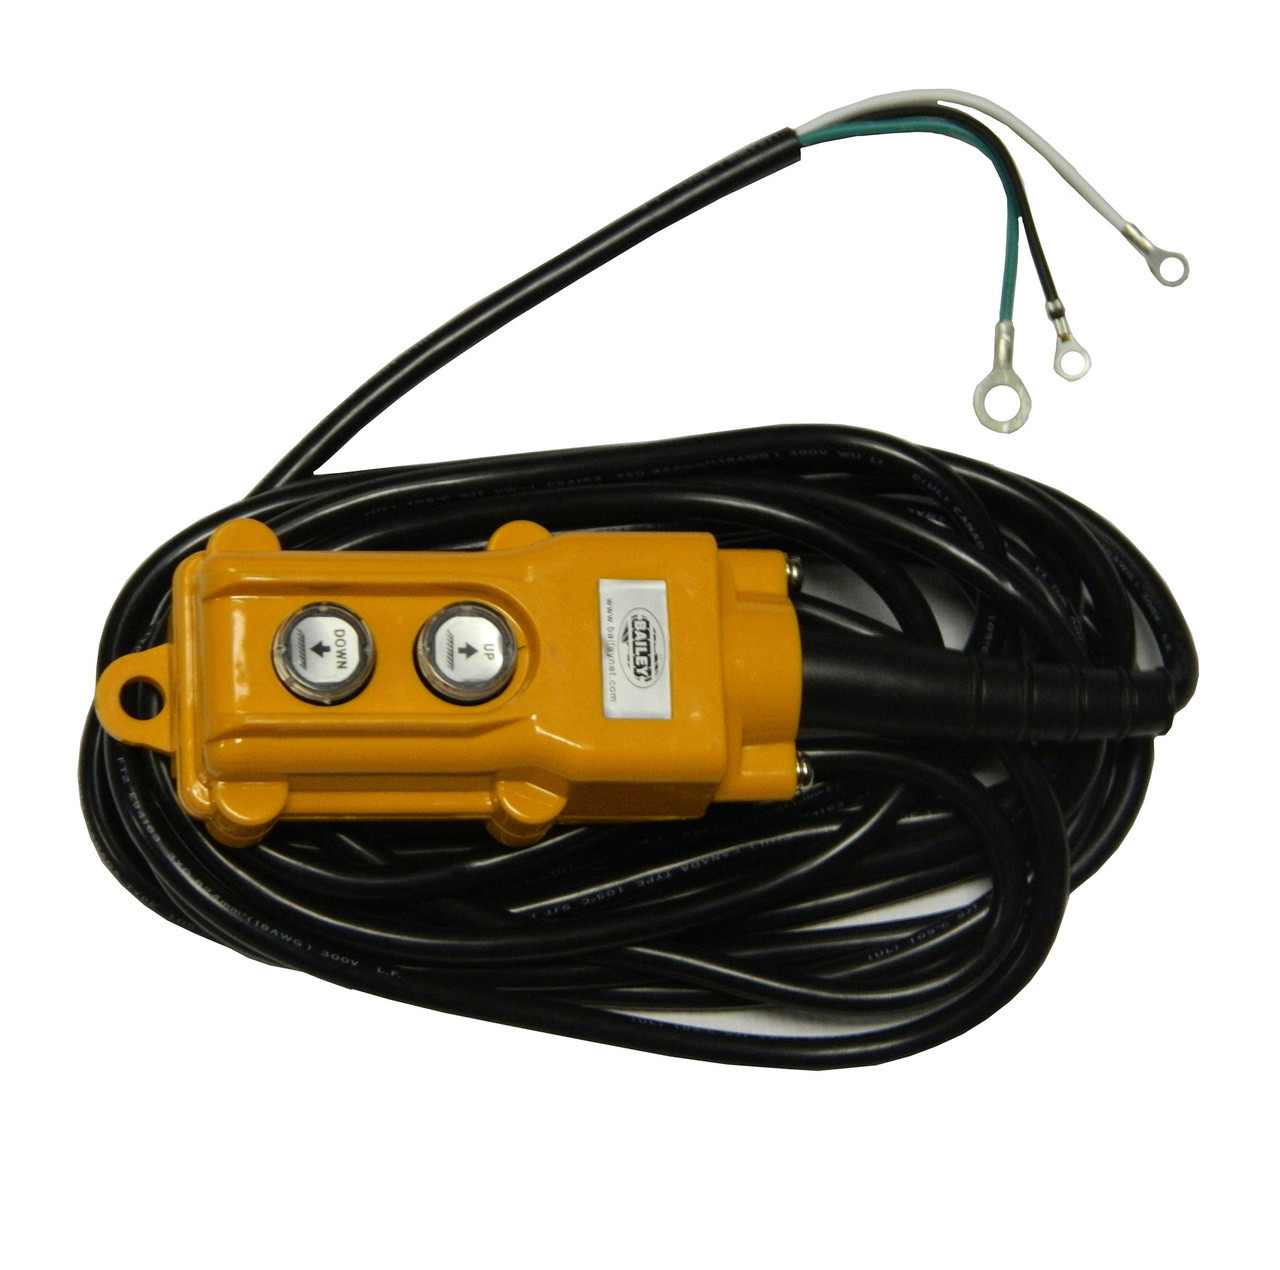 Dtrc Gd Replacement Remote Control For Dump Trailers 3 Wire Trailer Wiring